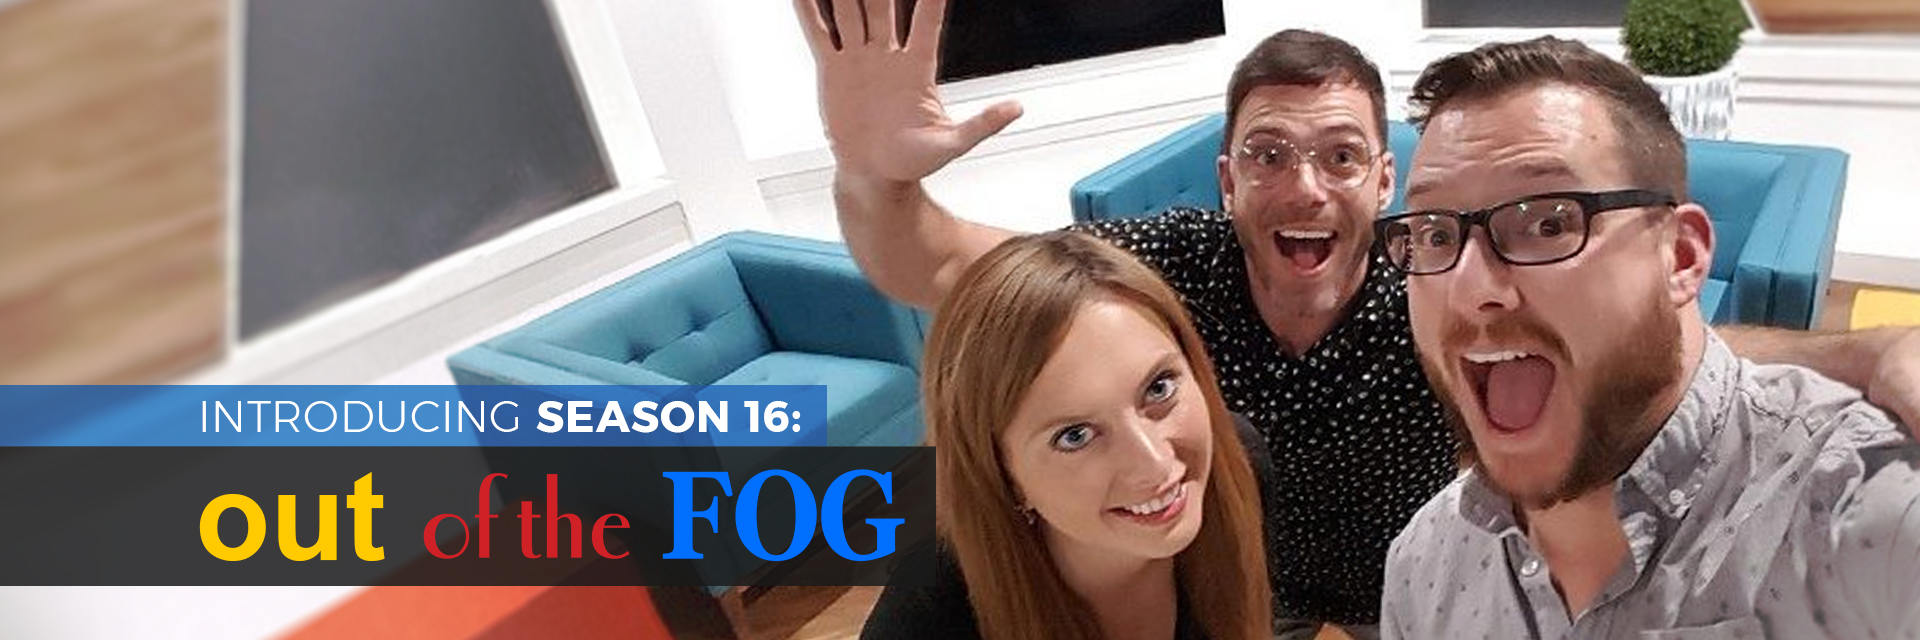 Out of the Fog with MusicNL